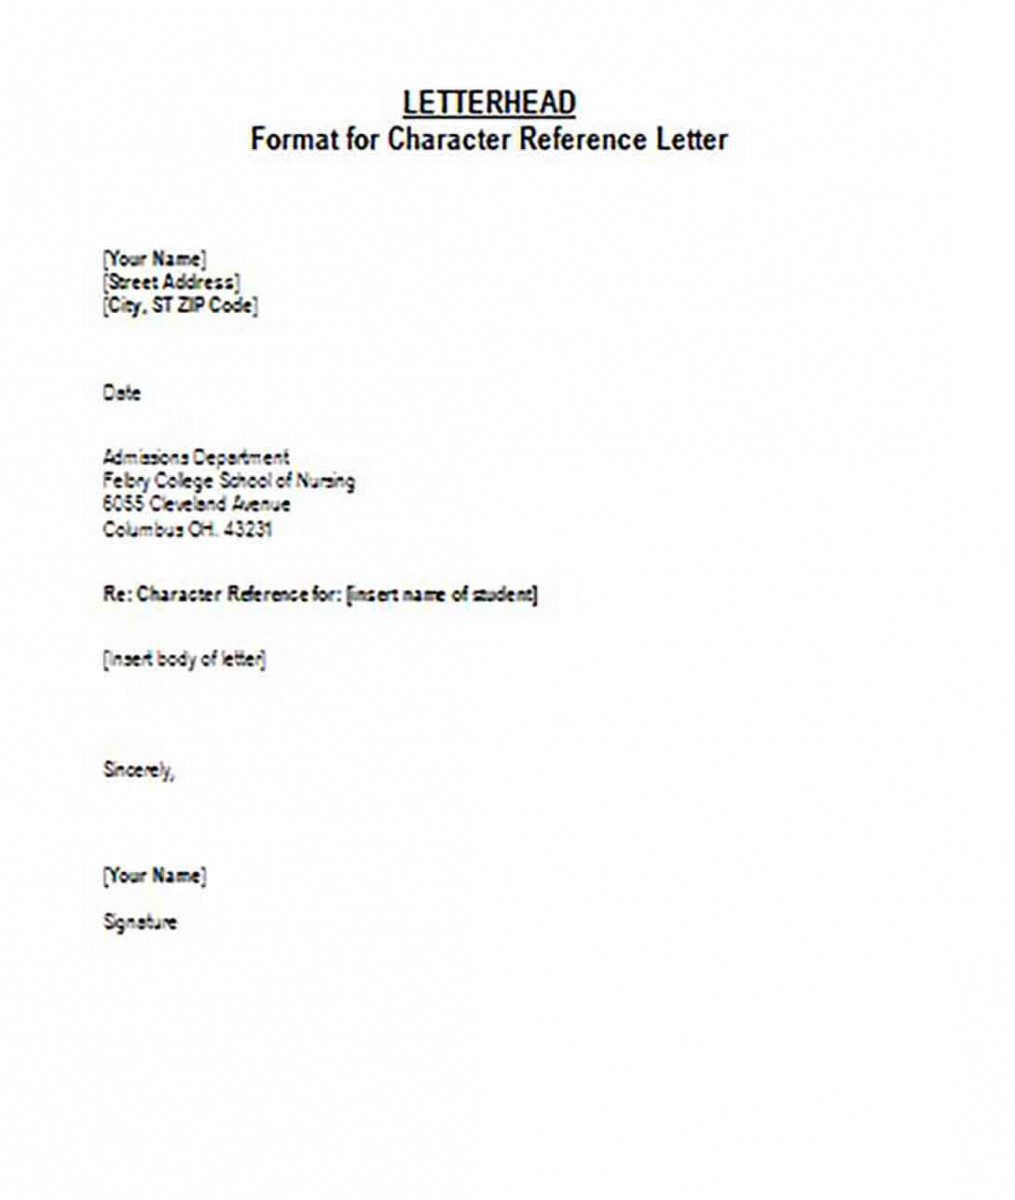 Format for Character Reference Letterhead